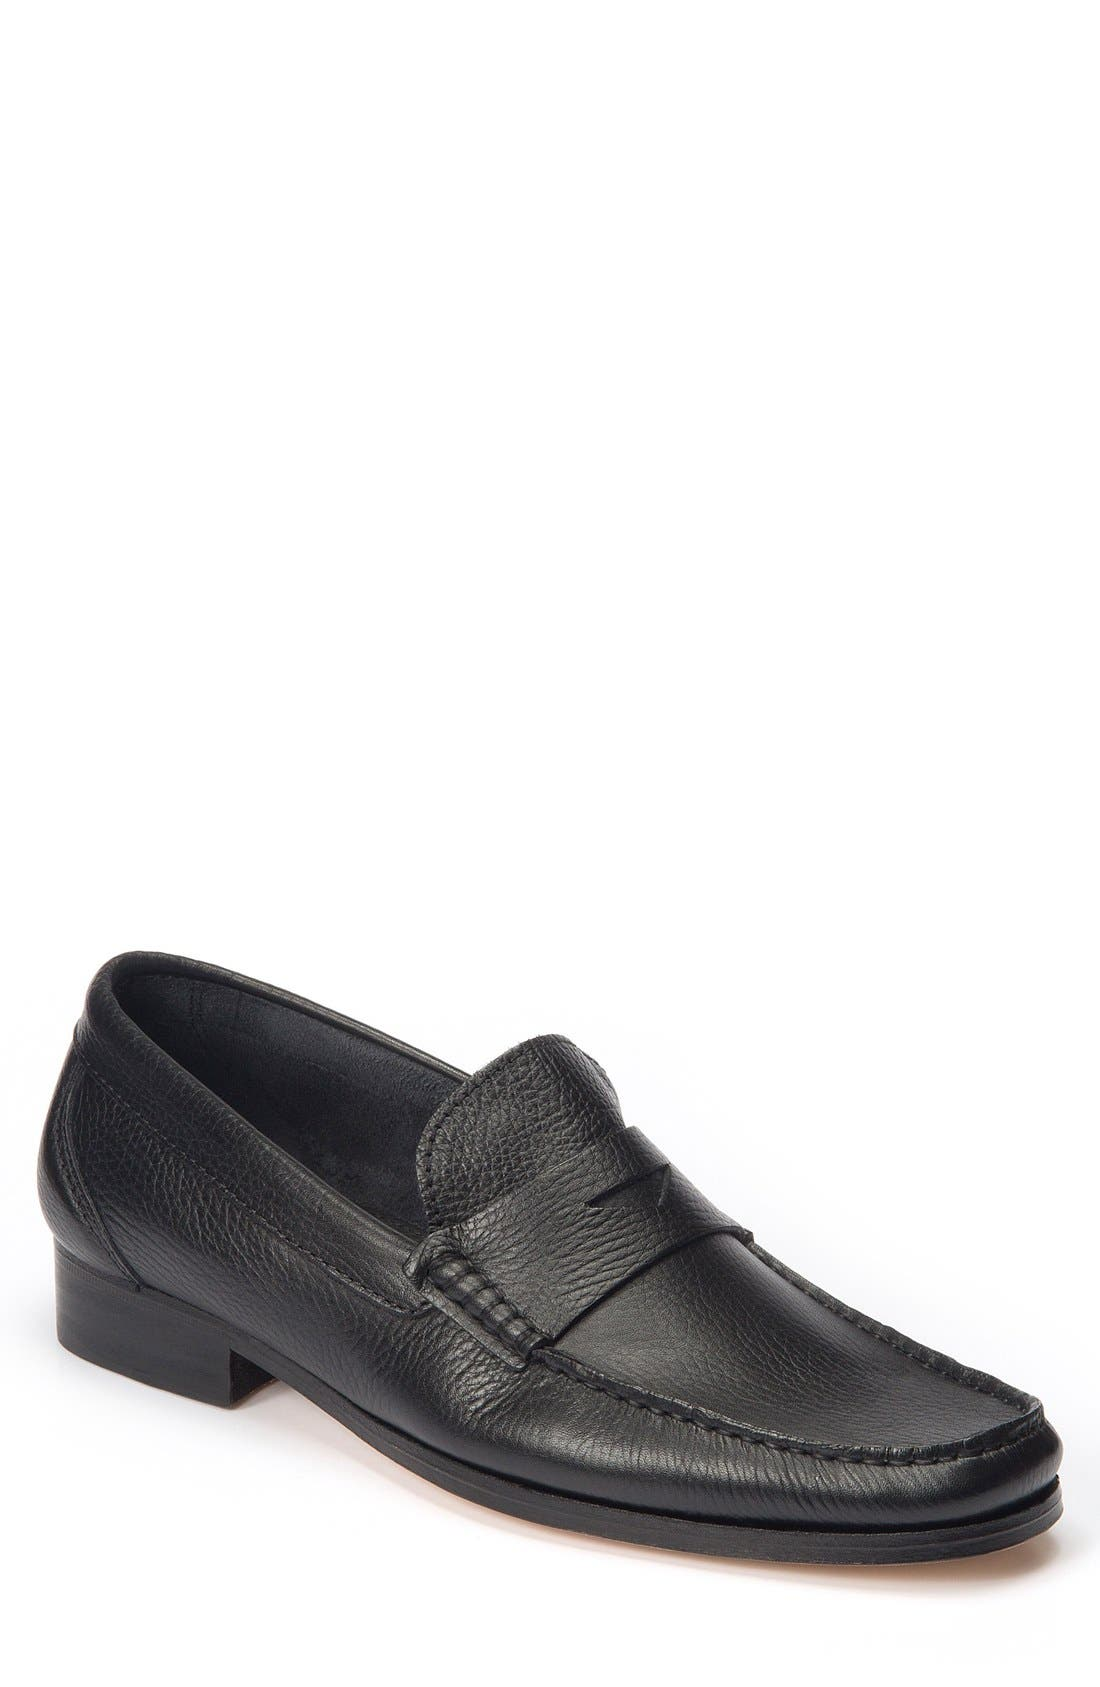 Segovia Penny Loafer,                             Main thumbnail 1, color,                             Black Leather